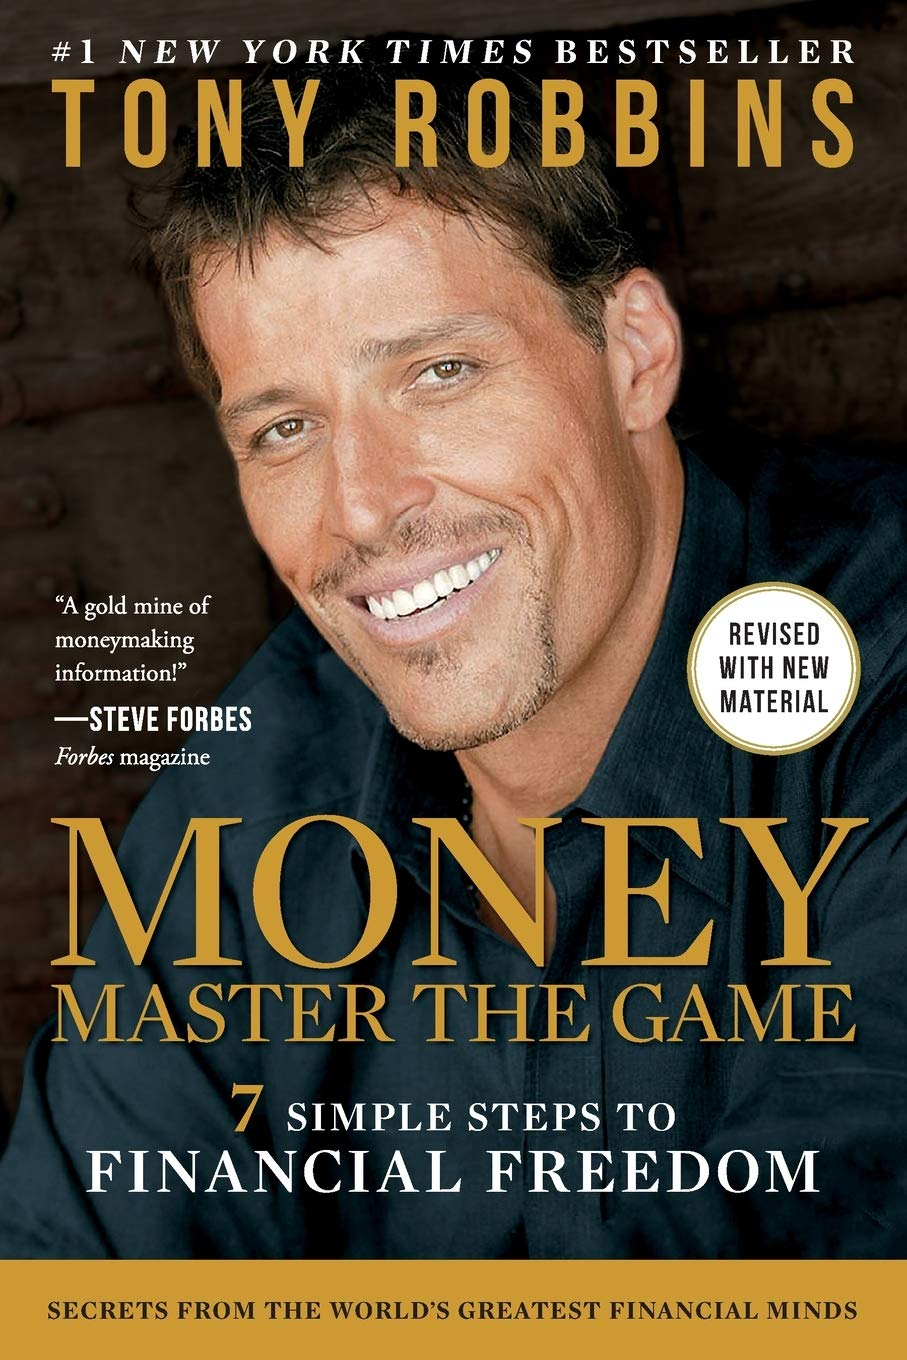 MONEY Master the Game: 7 Simple Steps to Financial Freedom: Robbins, Tony:  8601423537887: Amazon.com: Books